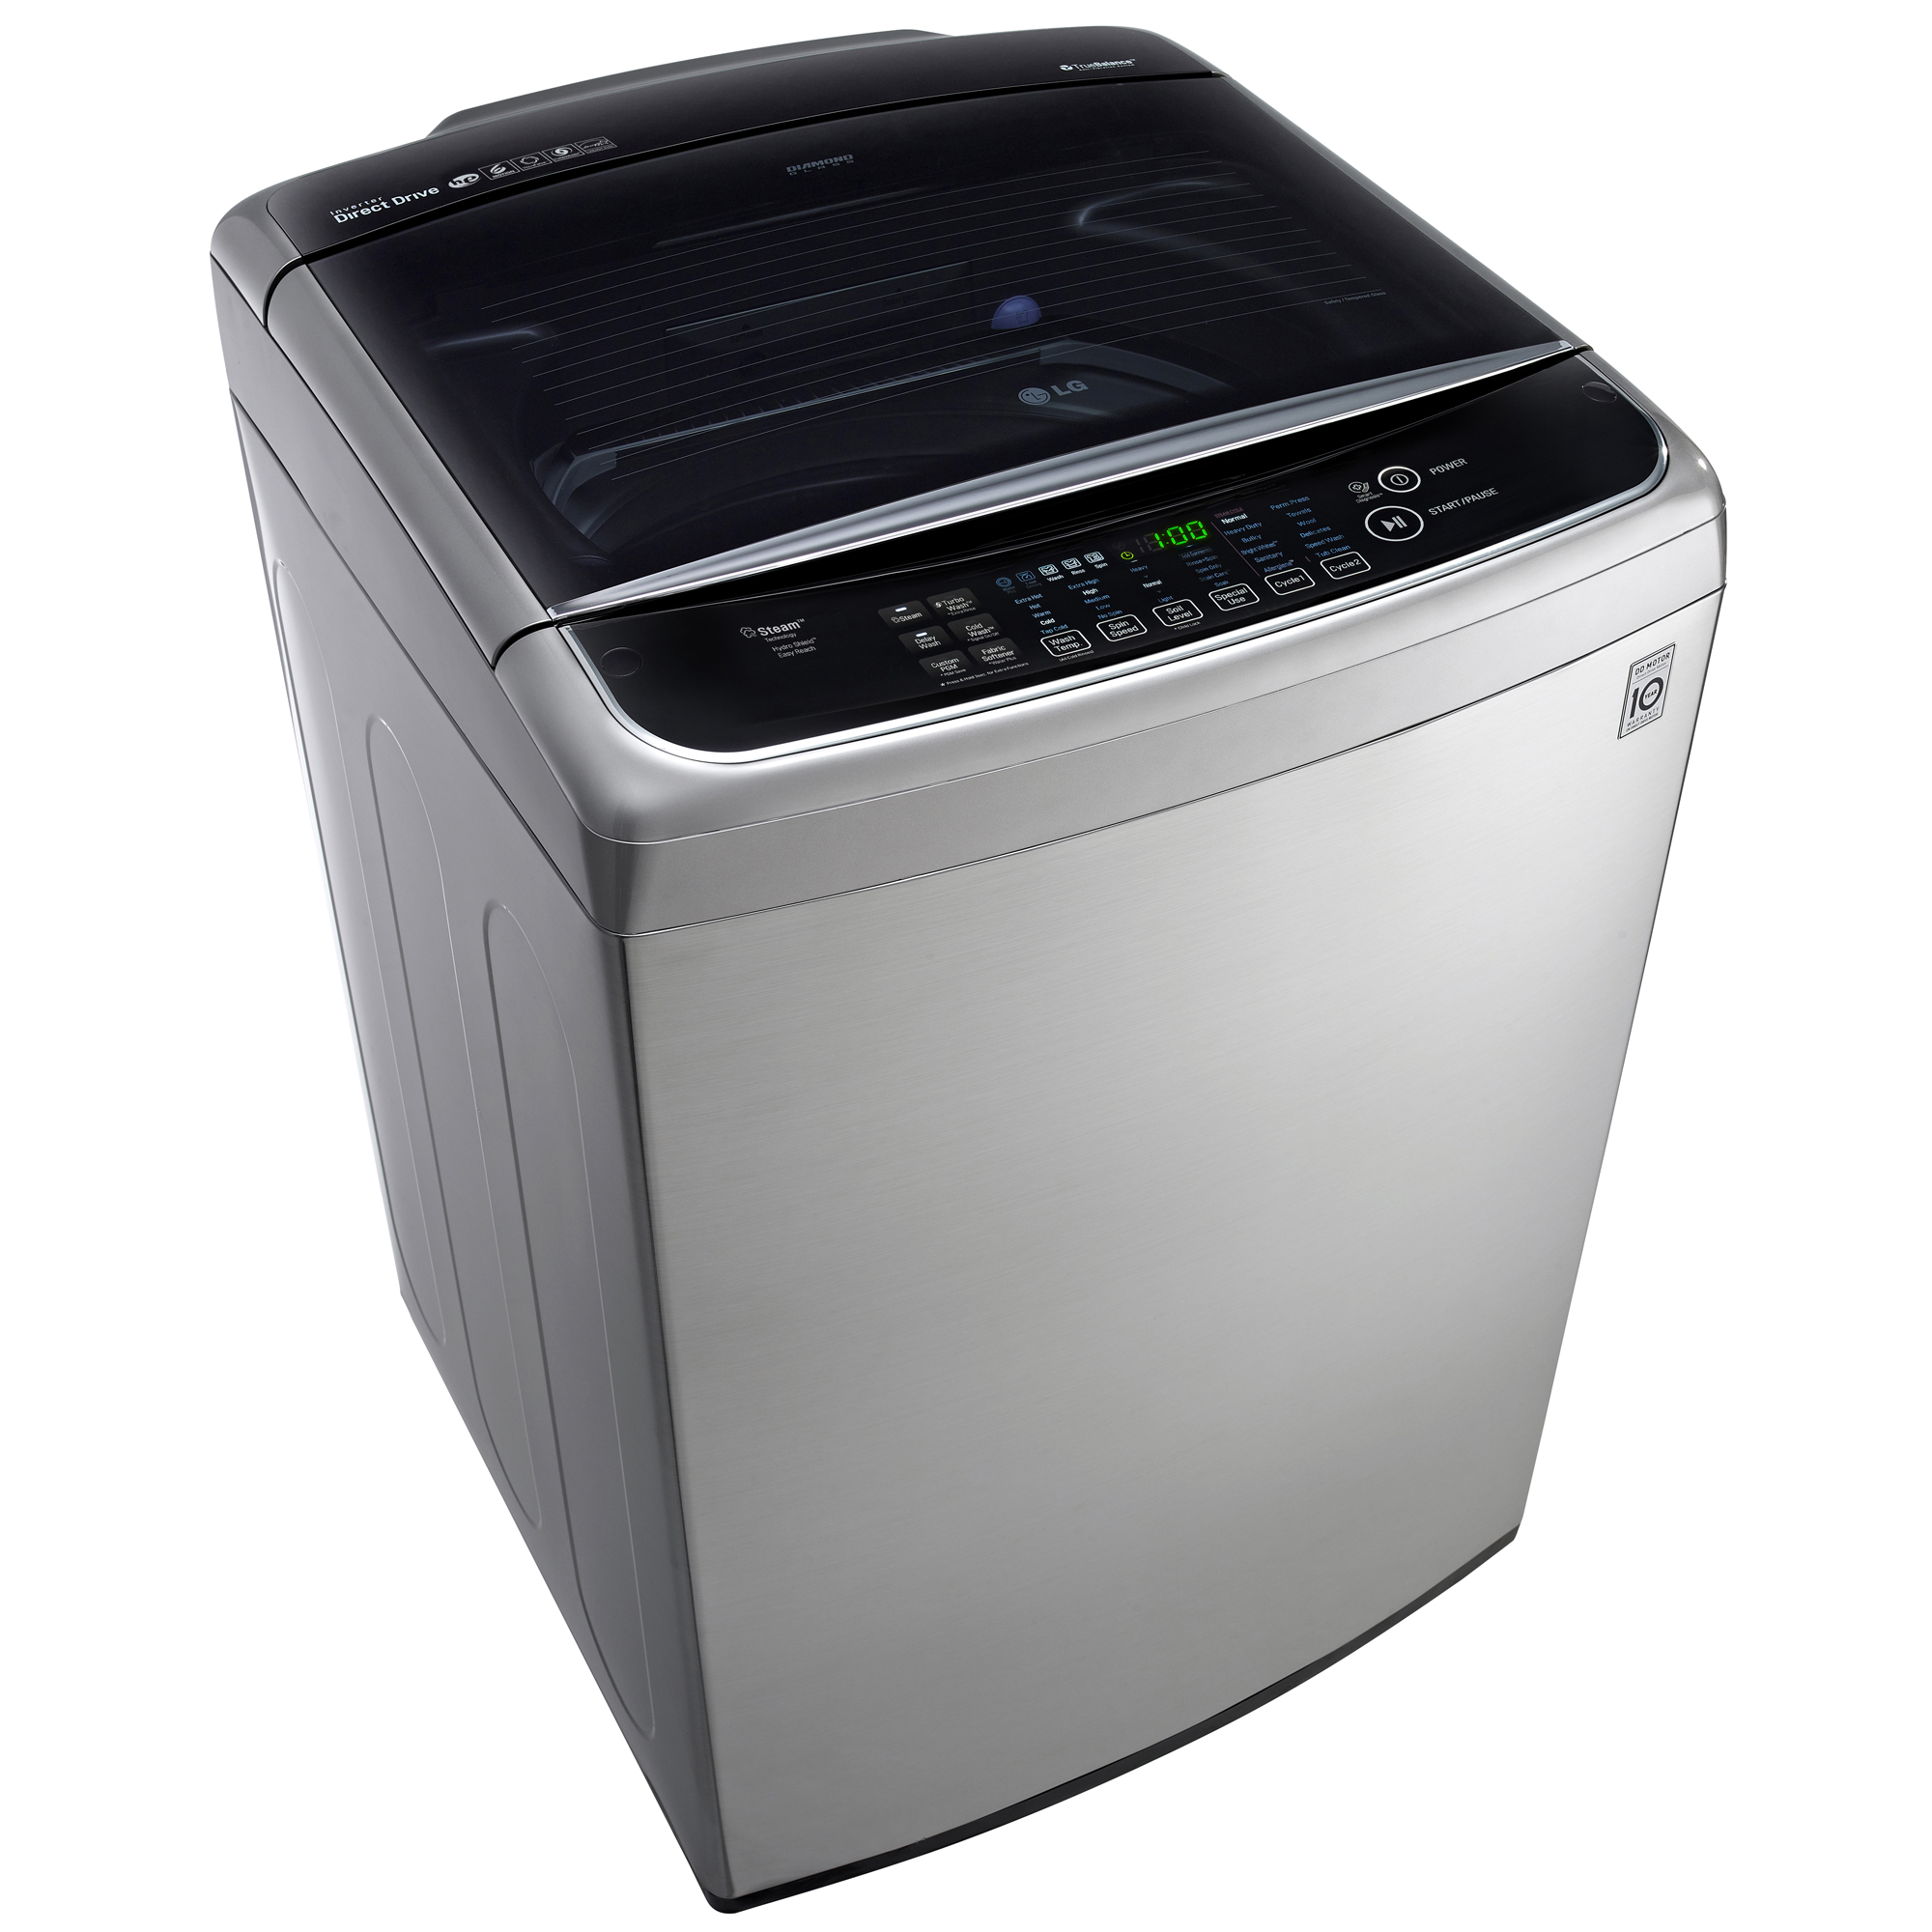 LG 4.9 cu.ft. Top Load Washer w/ Steam